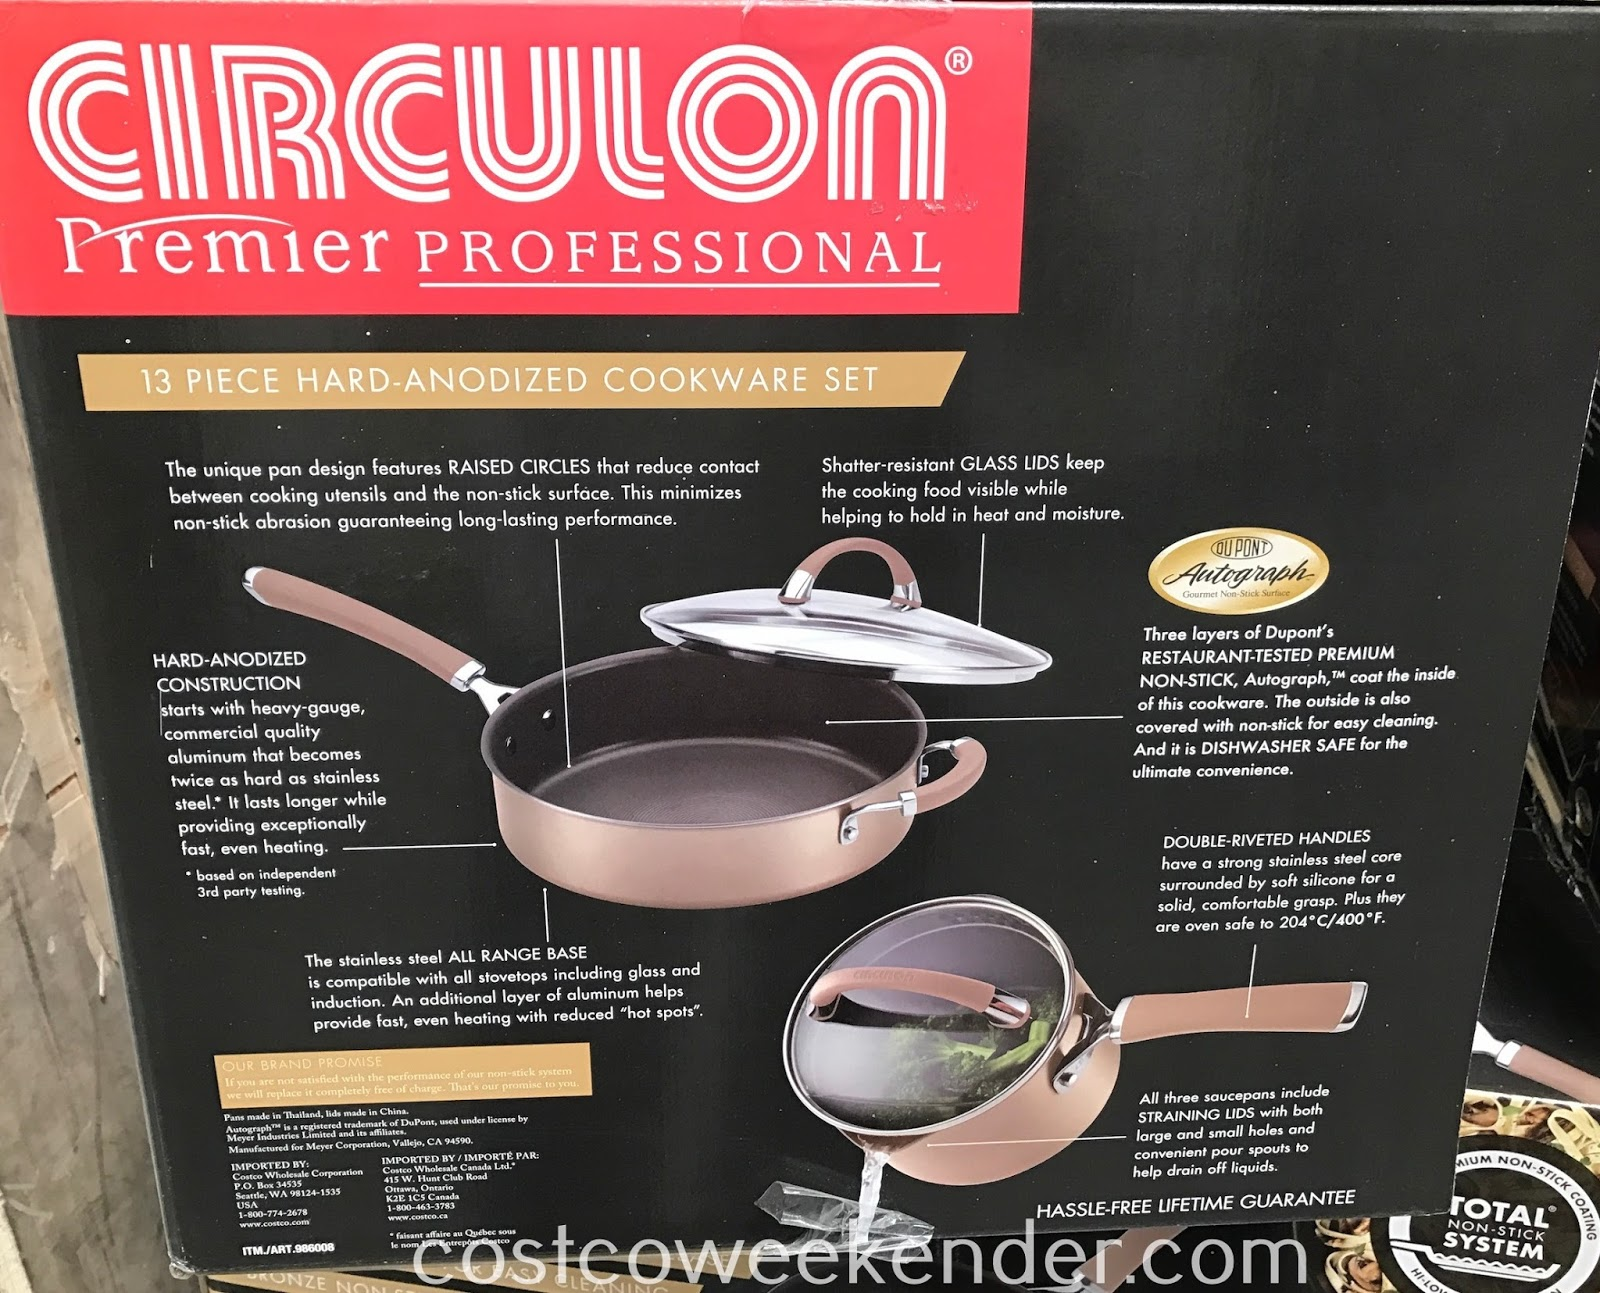 Costco 986008 - Circulon 13 piece Hard-Anodized Cookware Set: great for any chef or home cook